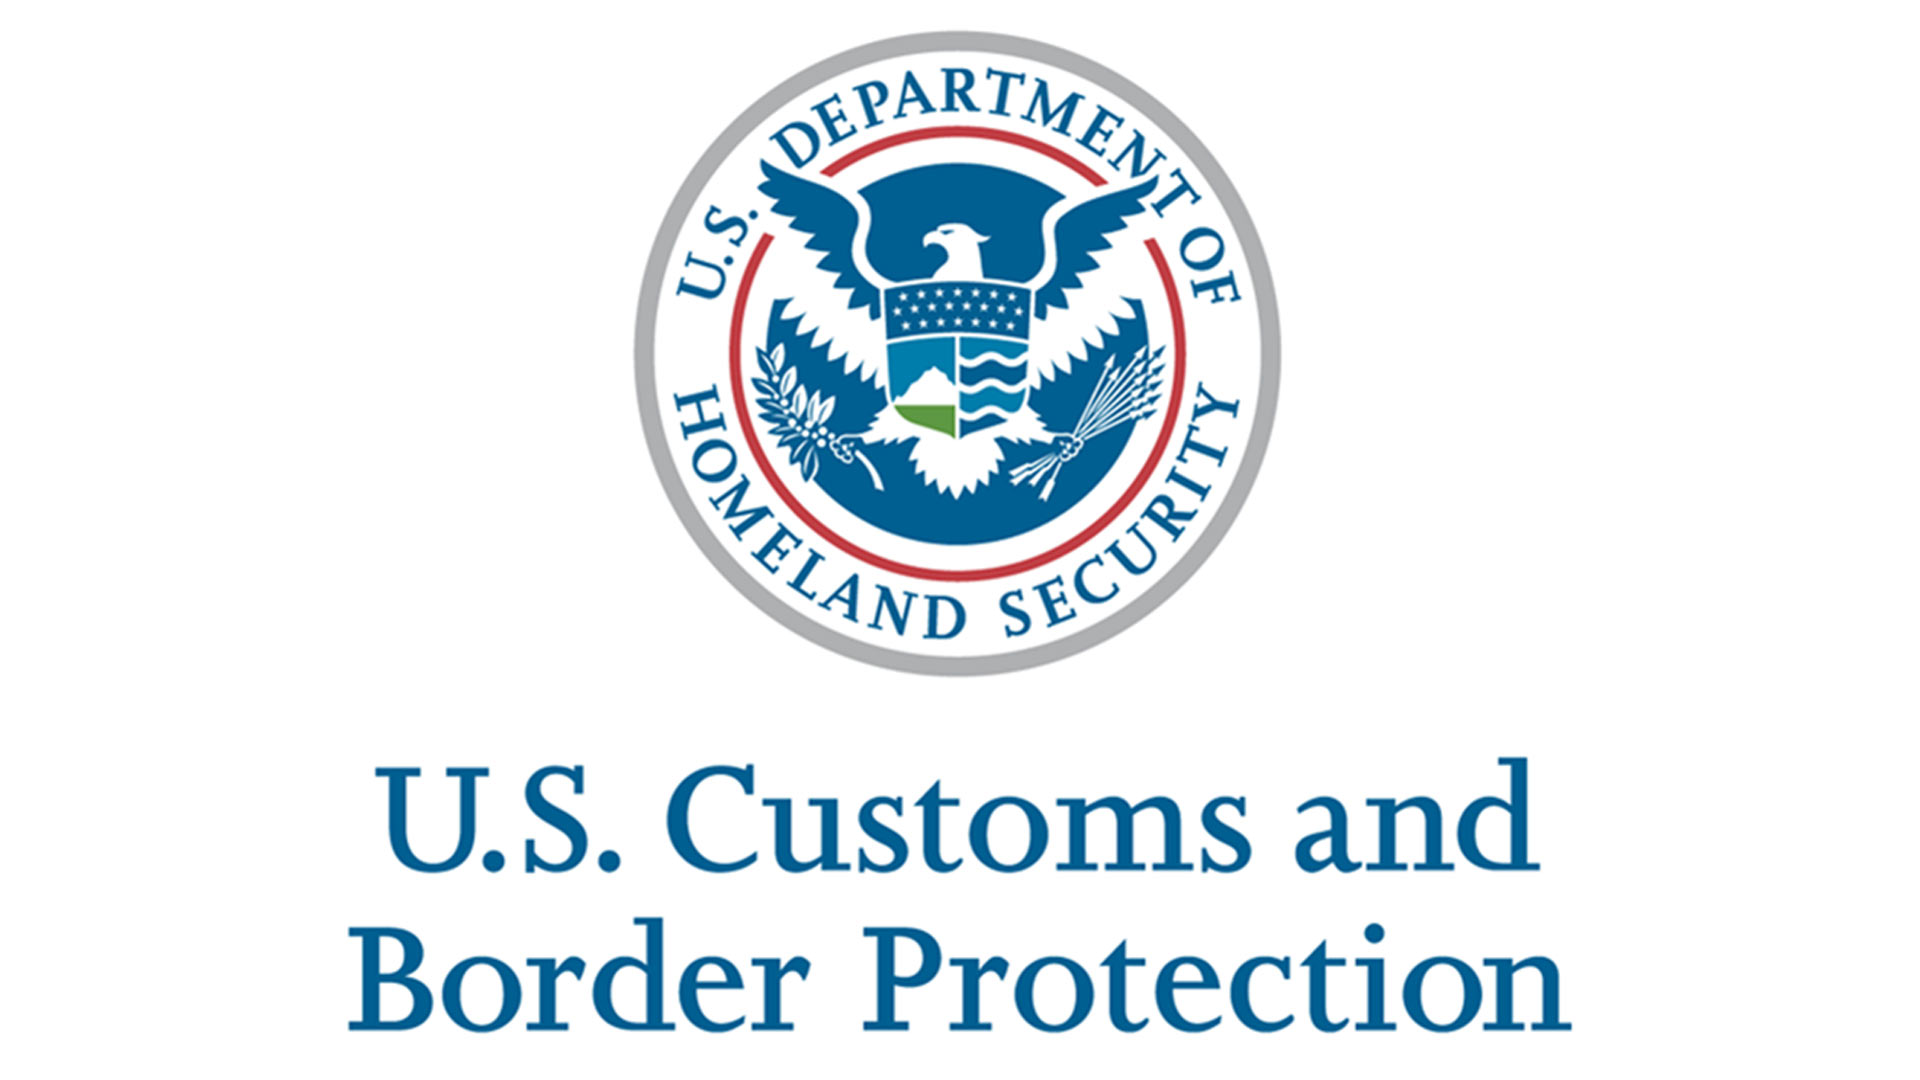 The seal of U.S. Customs and Border Protection.